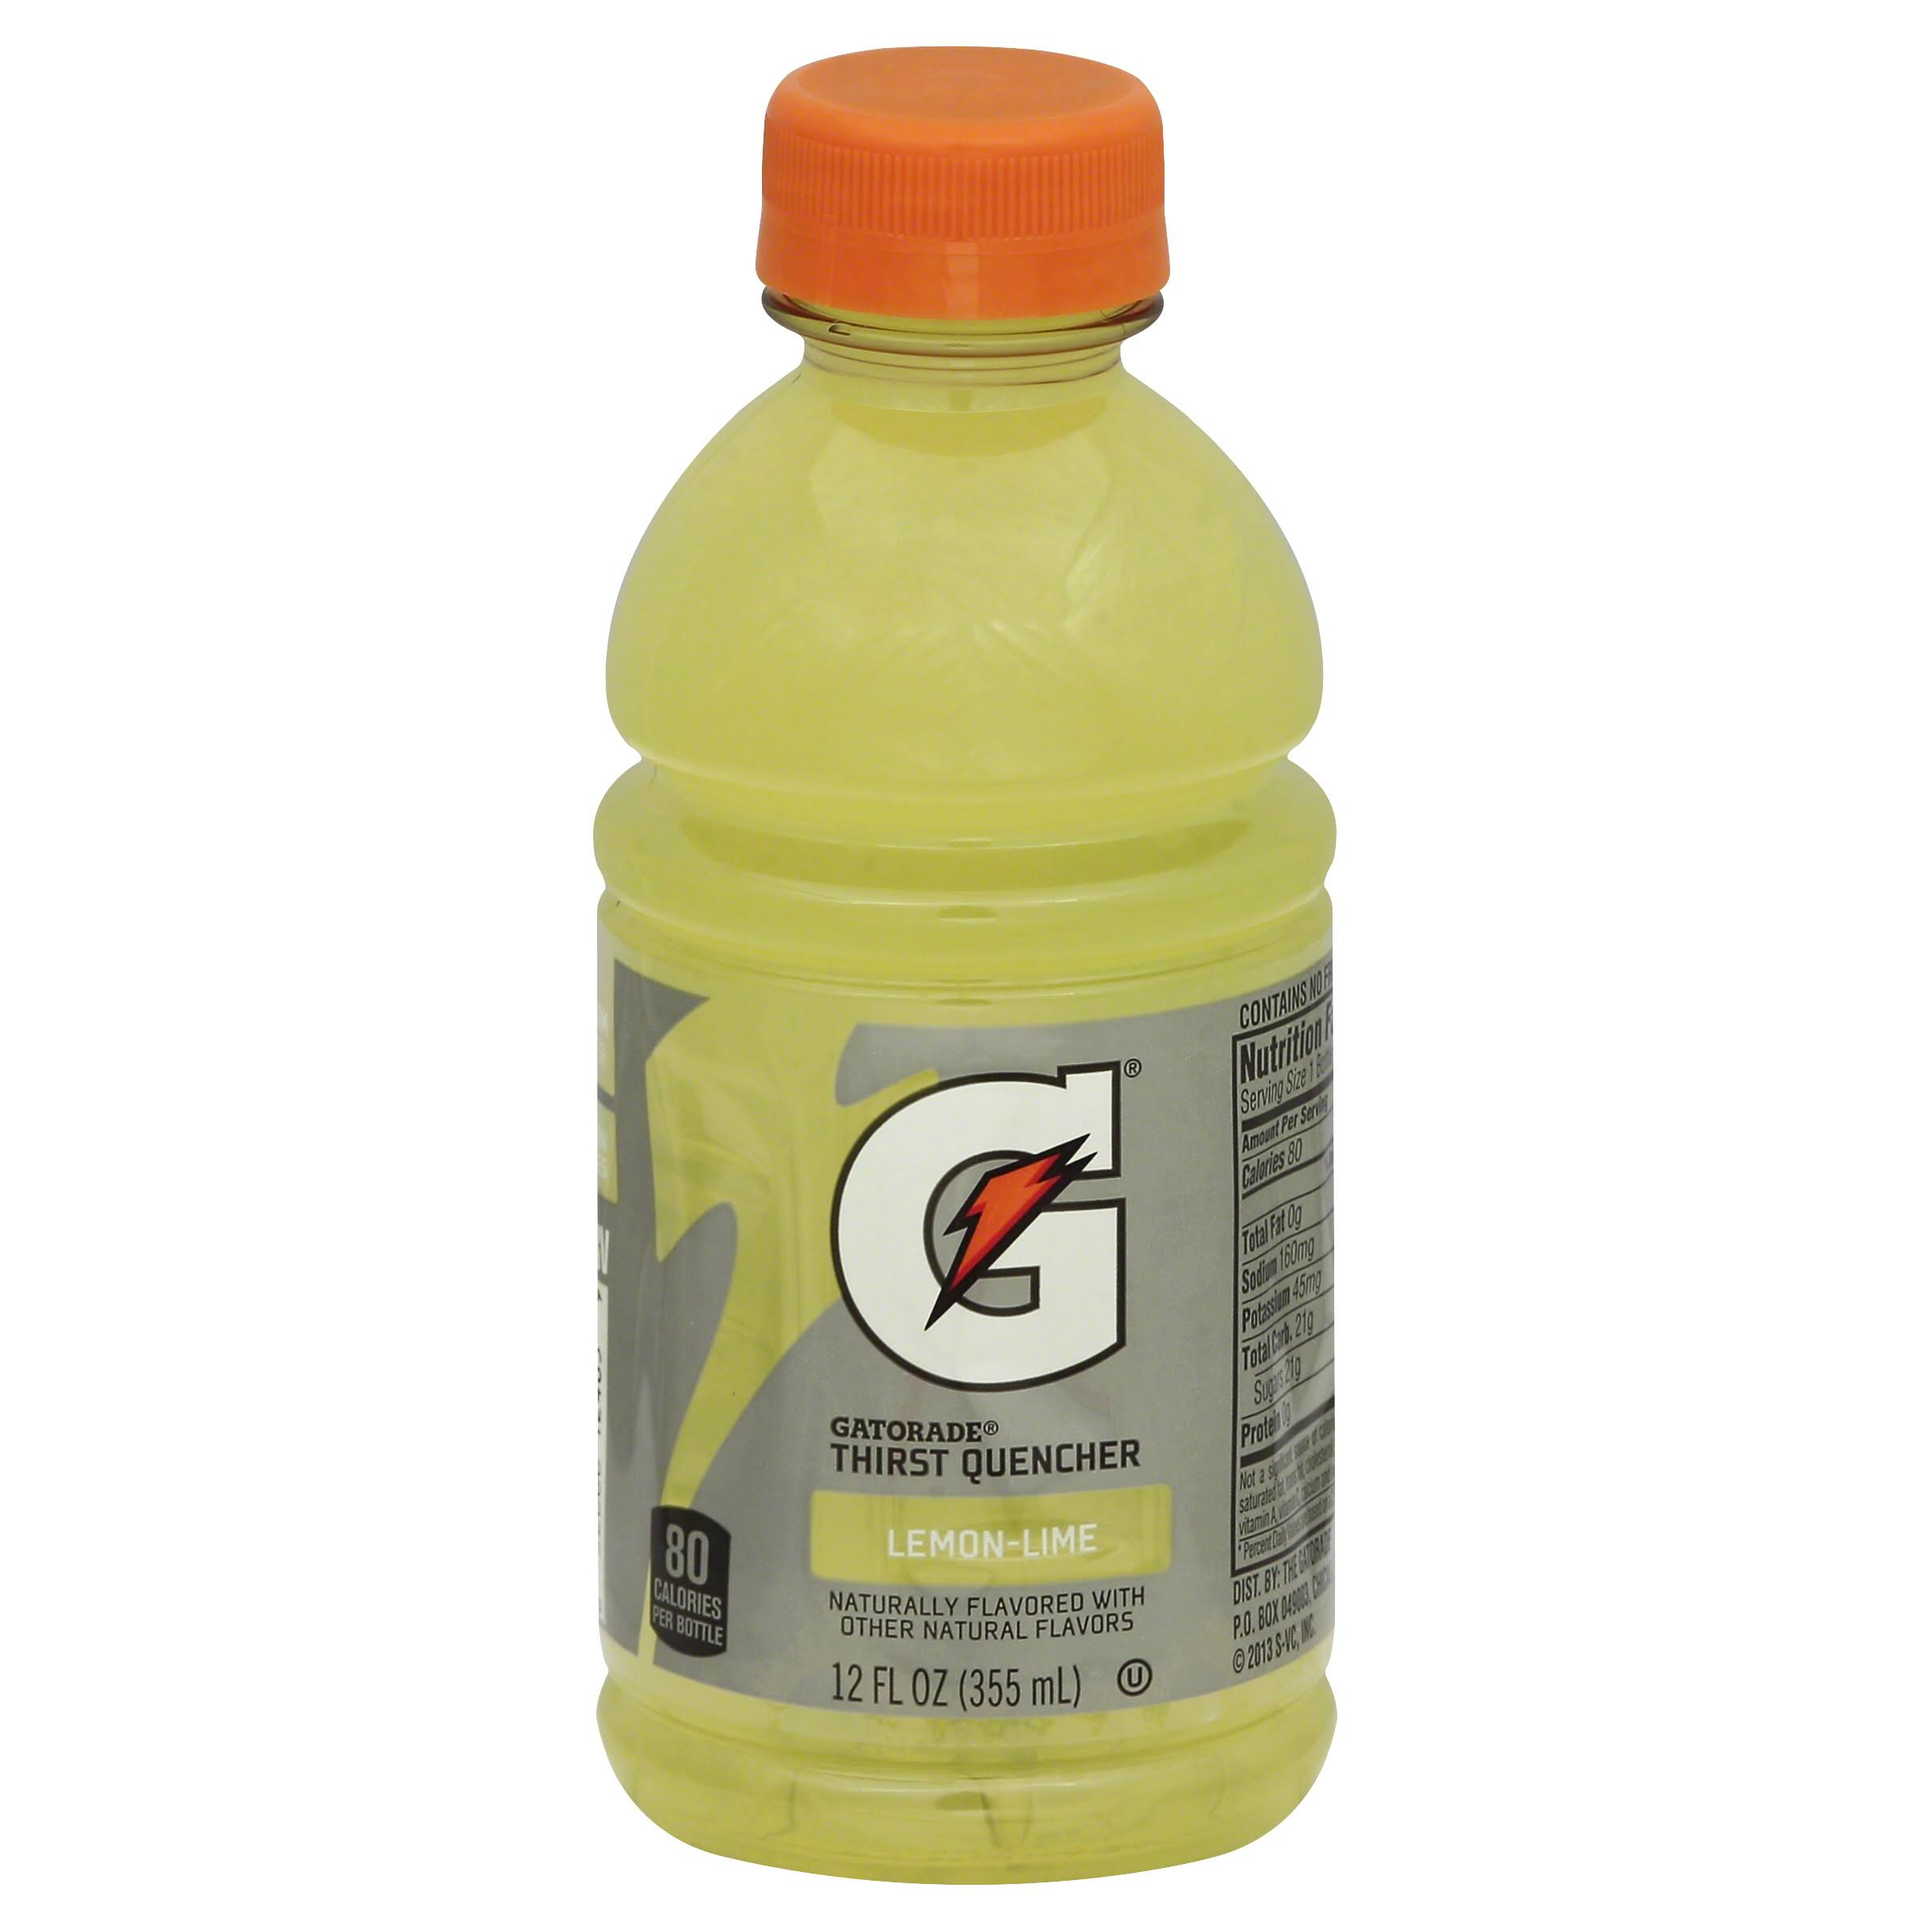 Gatorade G Series Thirst Quencher, Perform, Lemon-Lime - 12 fl oz